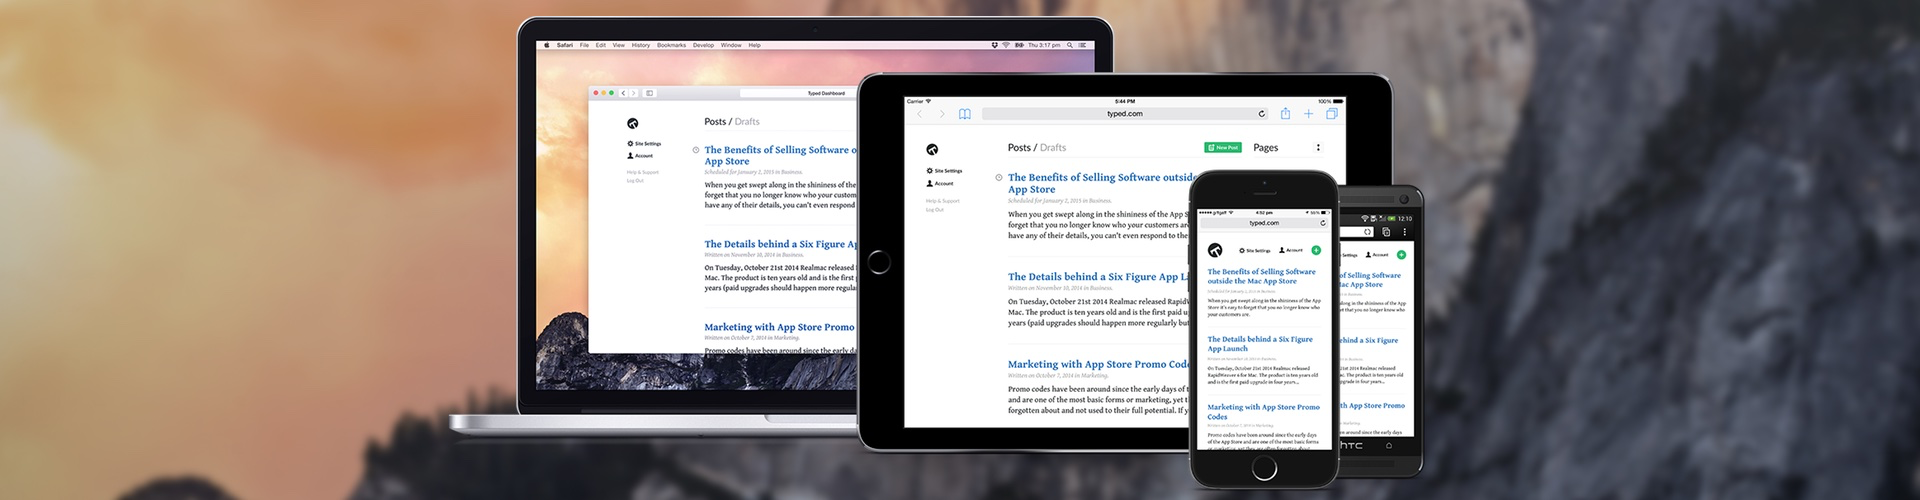 Typed.com — A New Blogging Platform from Realmac